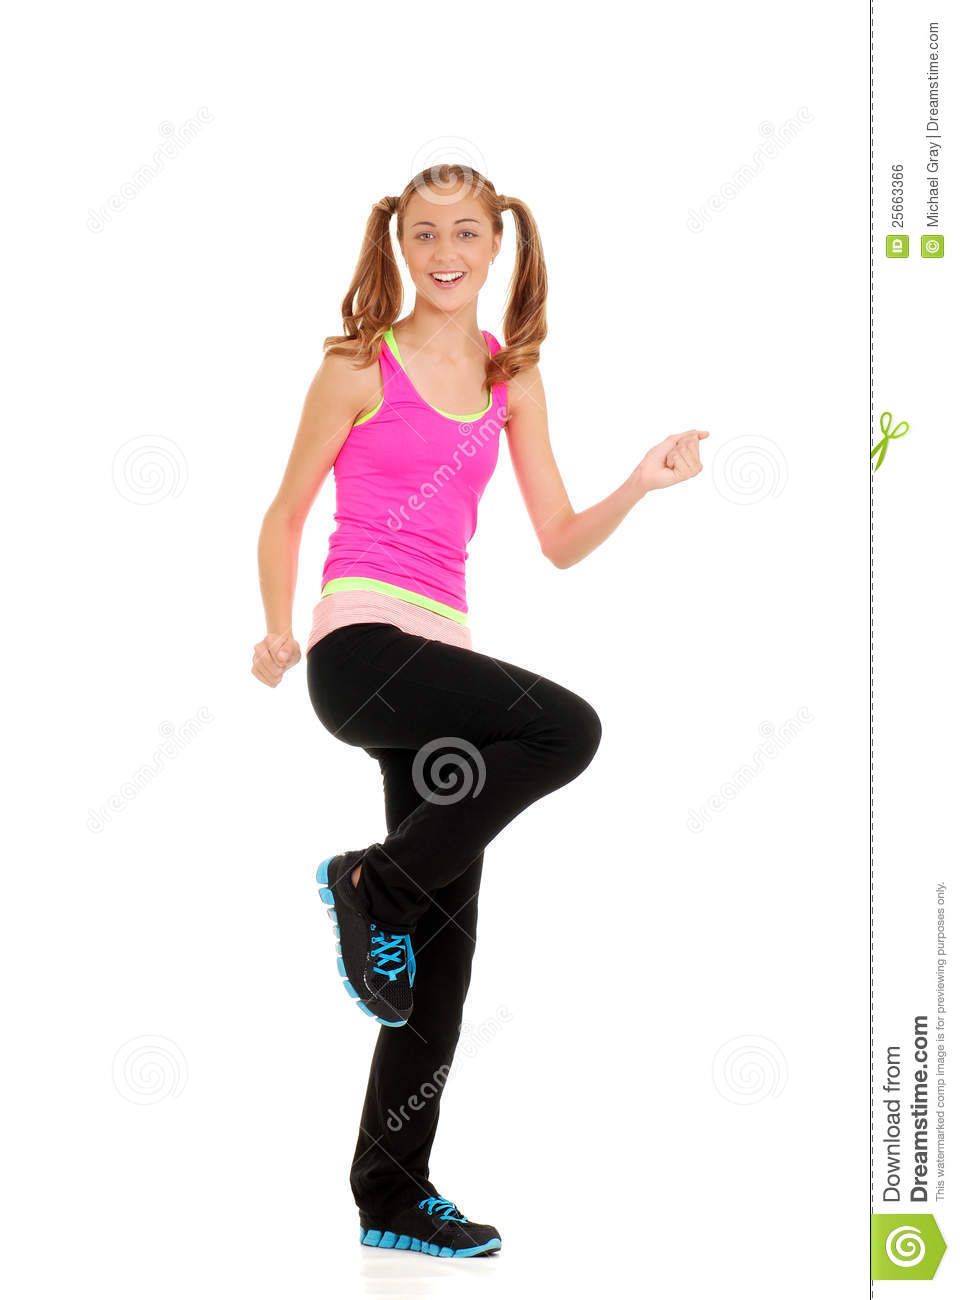 Happy Teen By Crumbling Wall Stock Image: Happy Teen Workout Zumba Fitness Royalty Free Stock Image